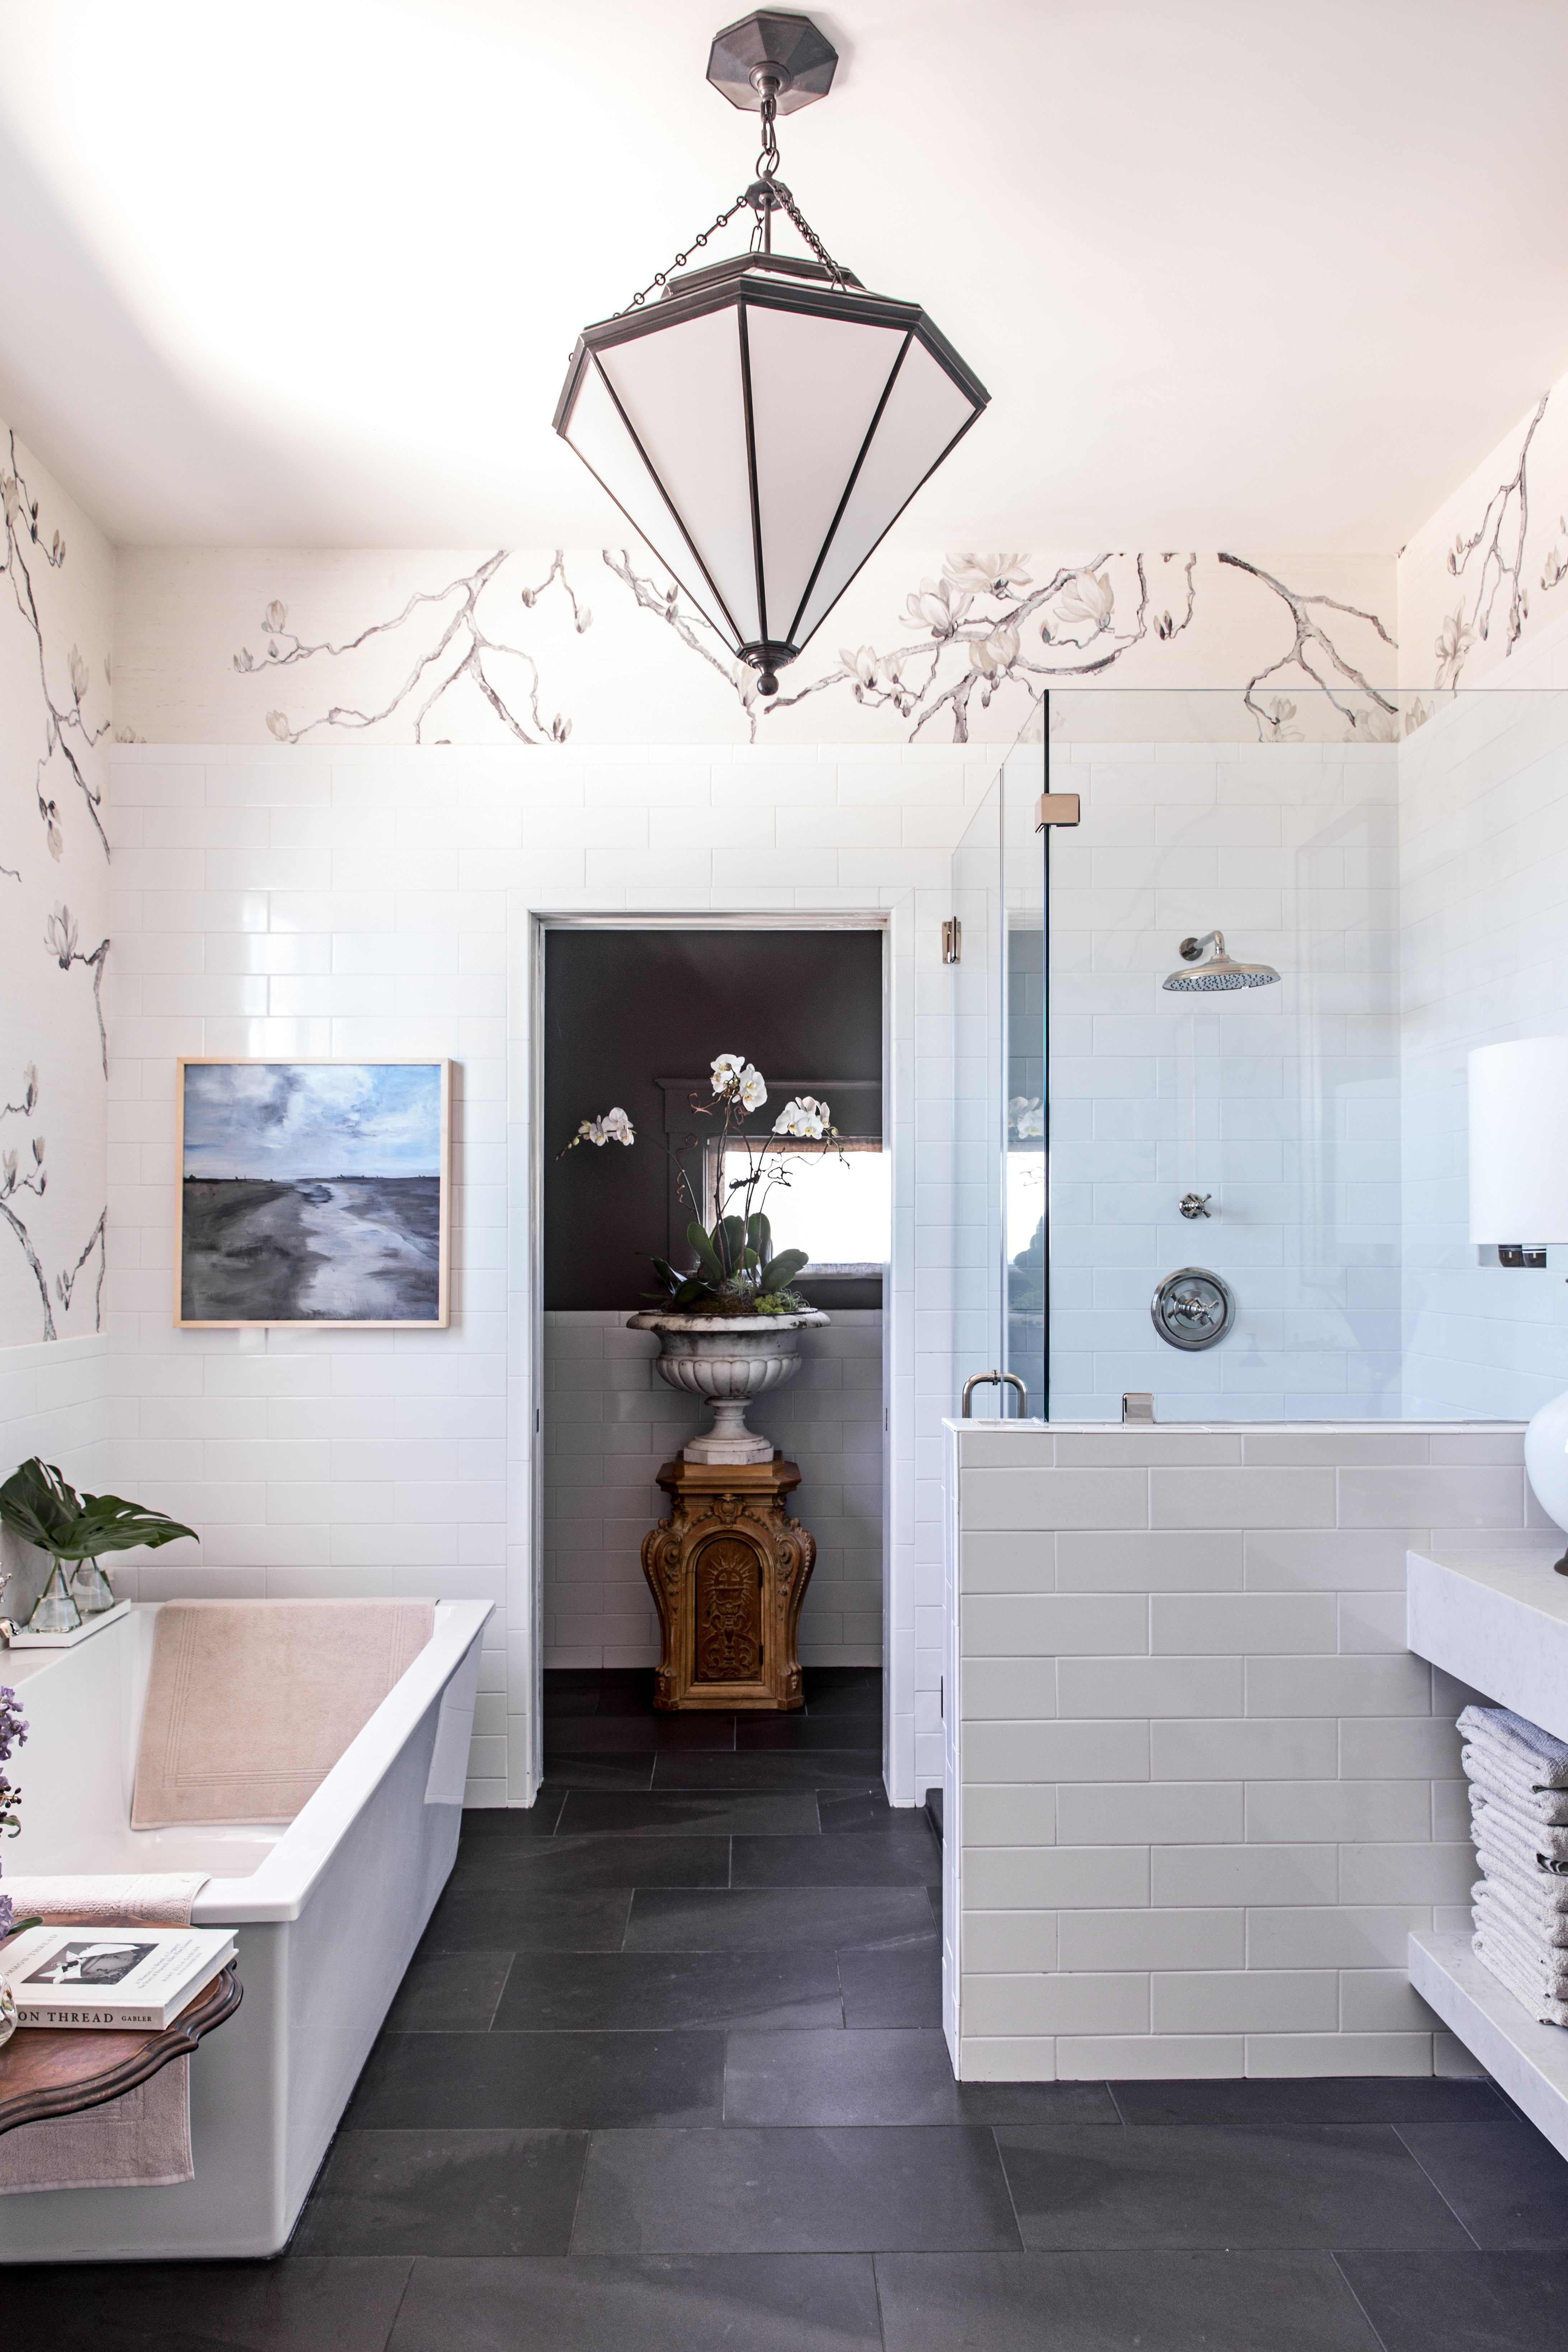 Lavender Bathroom Inspiration From Chad James  Black Southern Belle